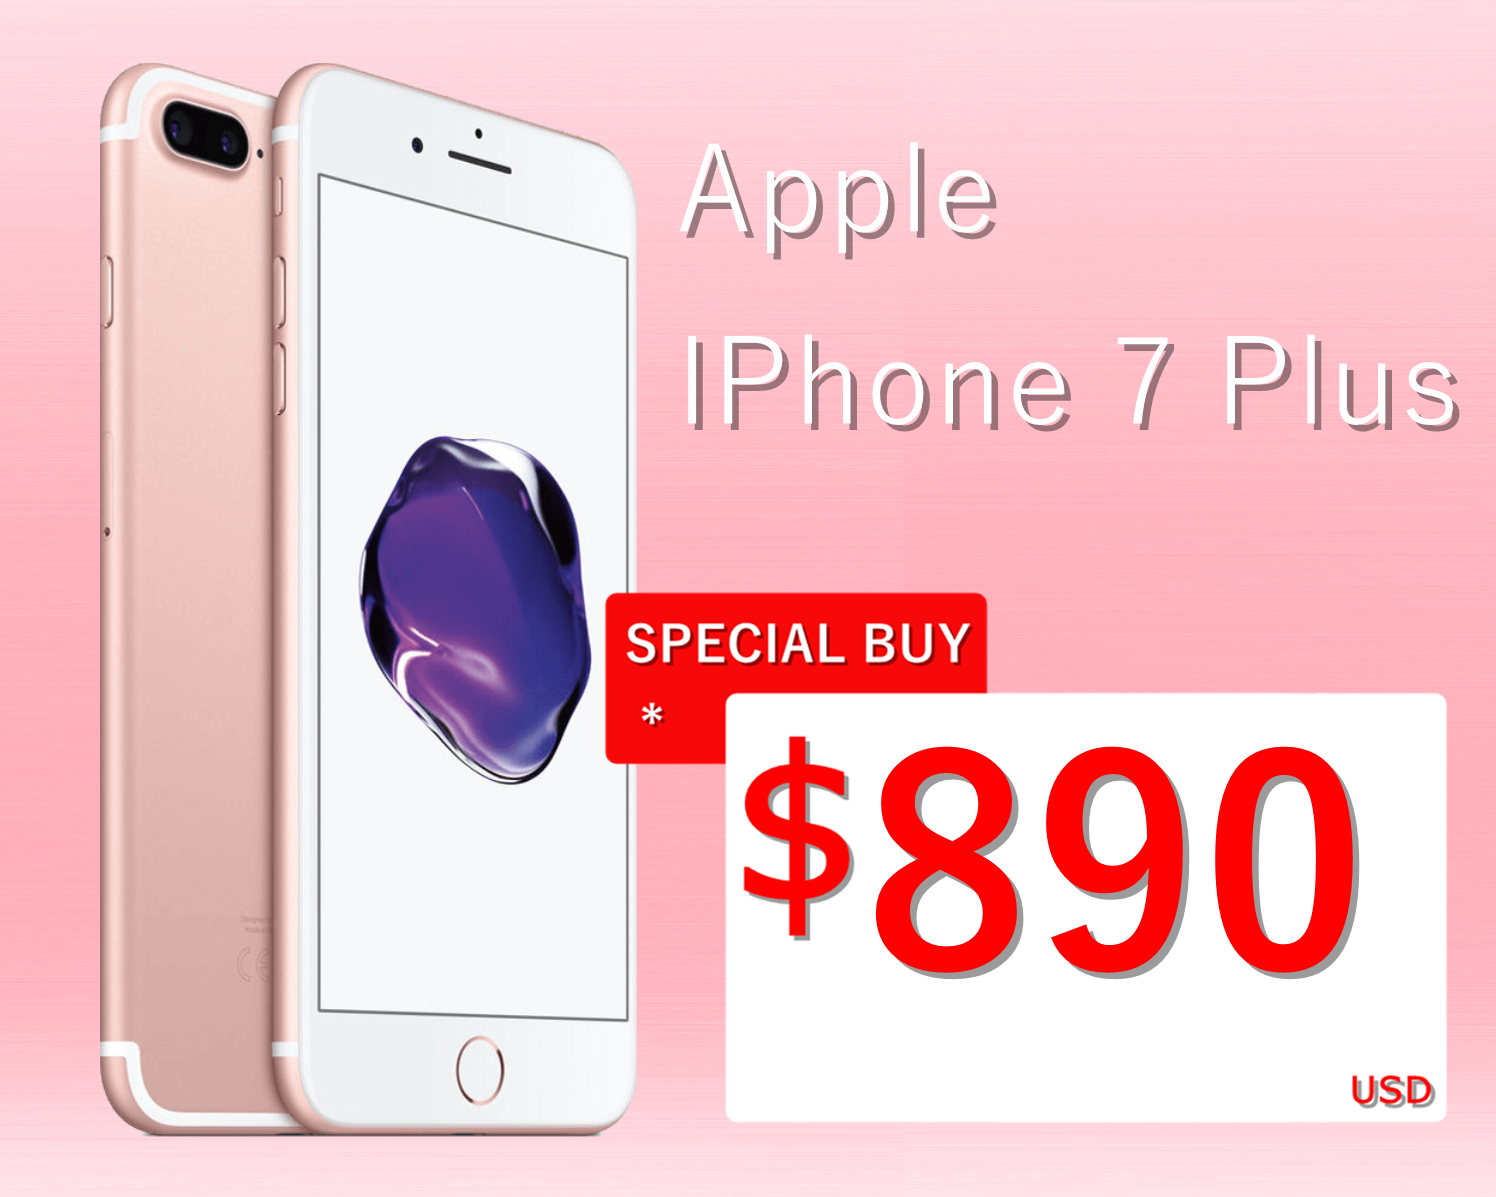 sale-apple-iphone7plus-bqshopestore.com.png